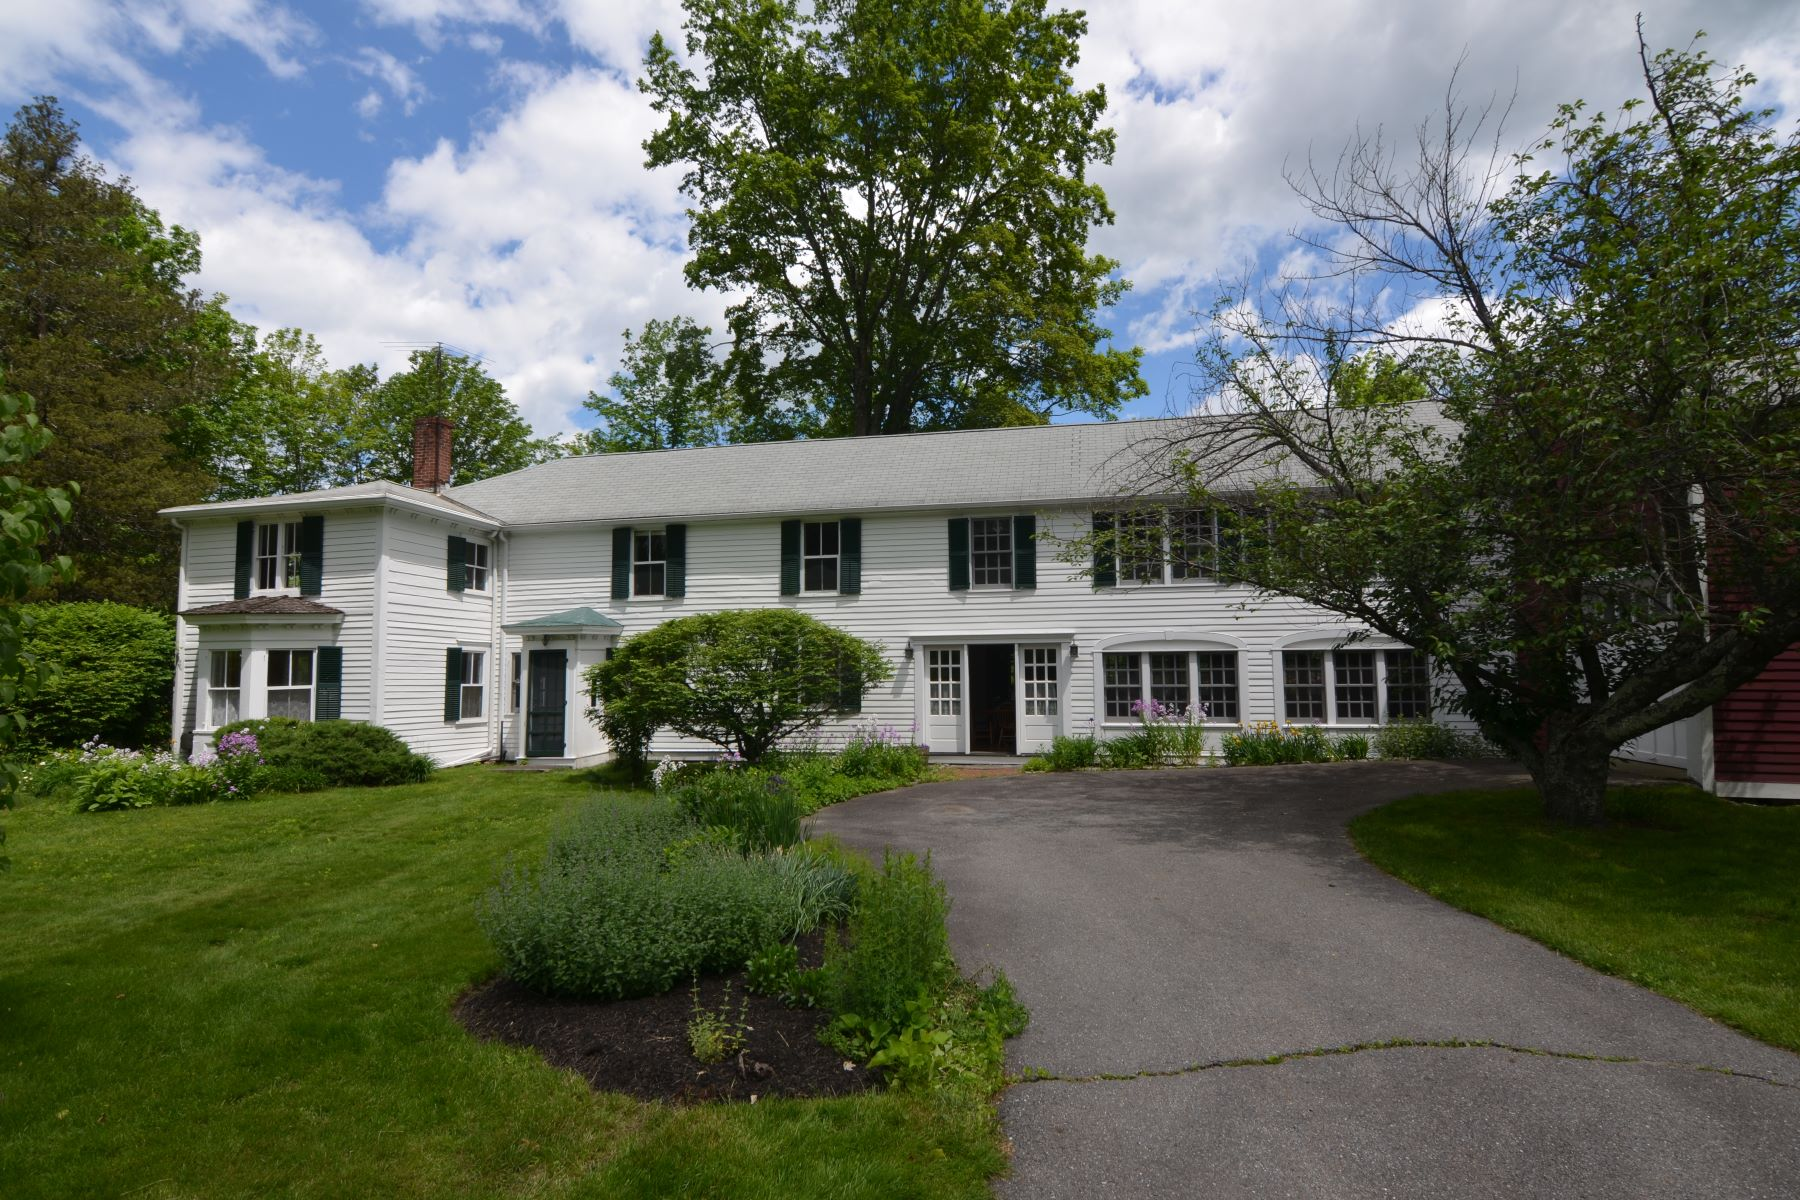 Single Family Home for Sale at Classic New England Antique 145 Center Street Shirley, Massachusetts 01464 United States